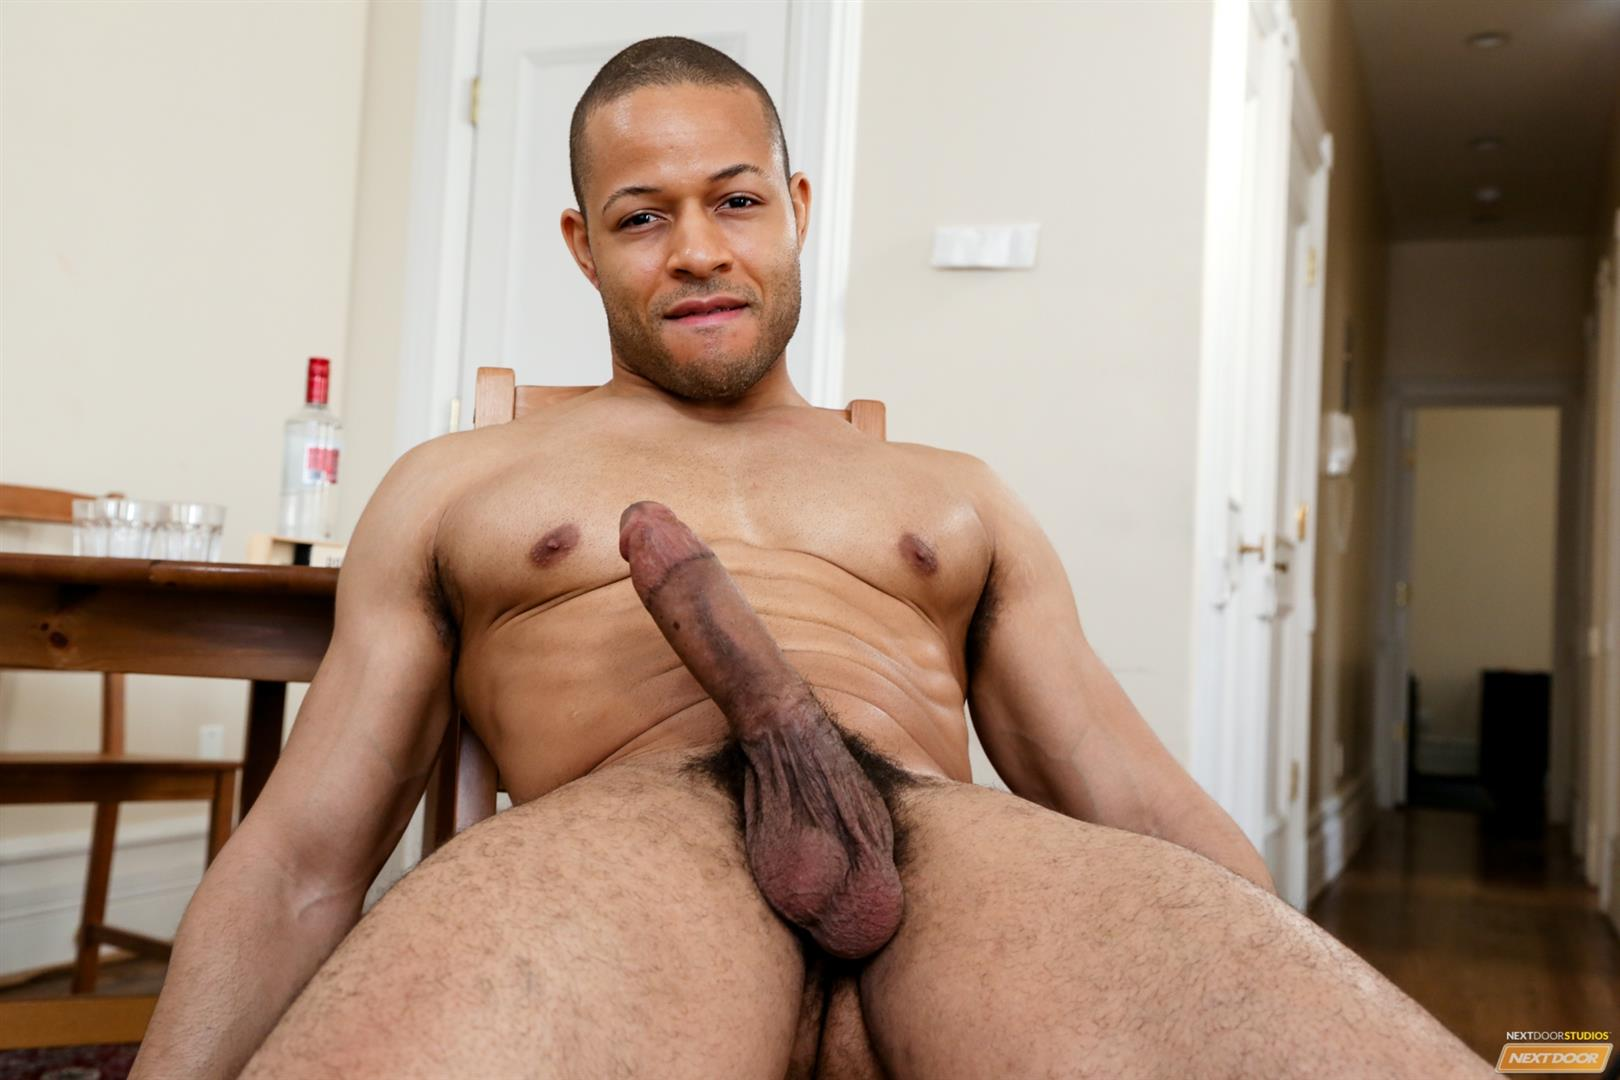 Next-Door-Ebony-Krave-Moore-and-Andre-Donovan-and-Rex-Cobra-Big-Black-Cock-Amateur-Gay-Porn-02 Three Black Guys Playing Strip Dominoes With Their Big Black Cocks